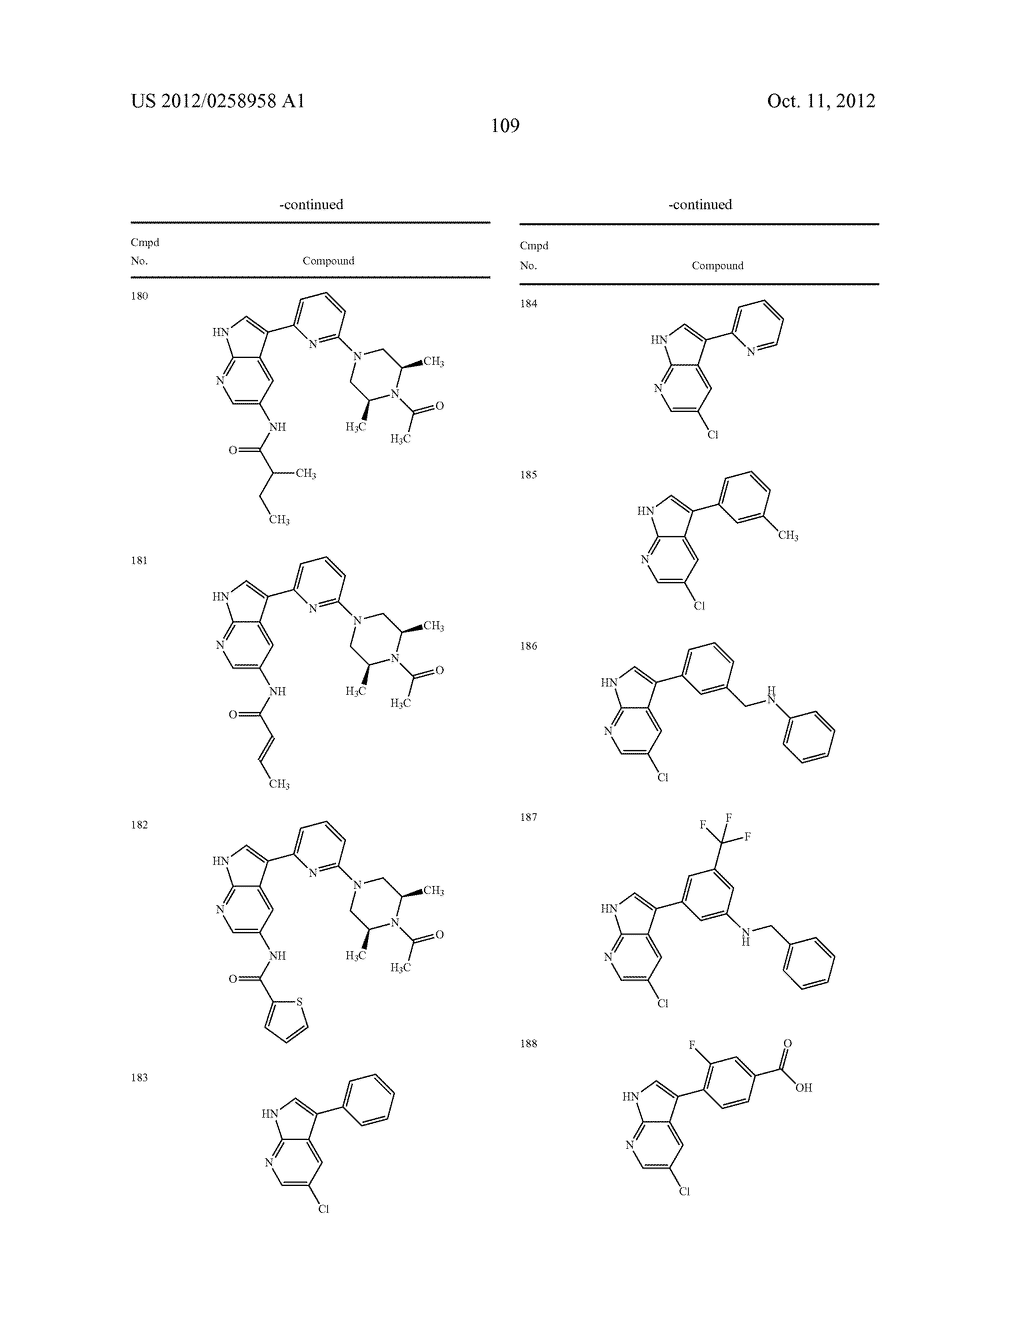 AZAINDOLES USEFUL AS INHIBITORS OF JAK AND OTHER PROTEIN KINASES - diagram, schematic, and image 110